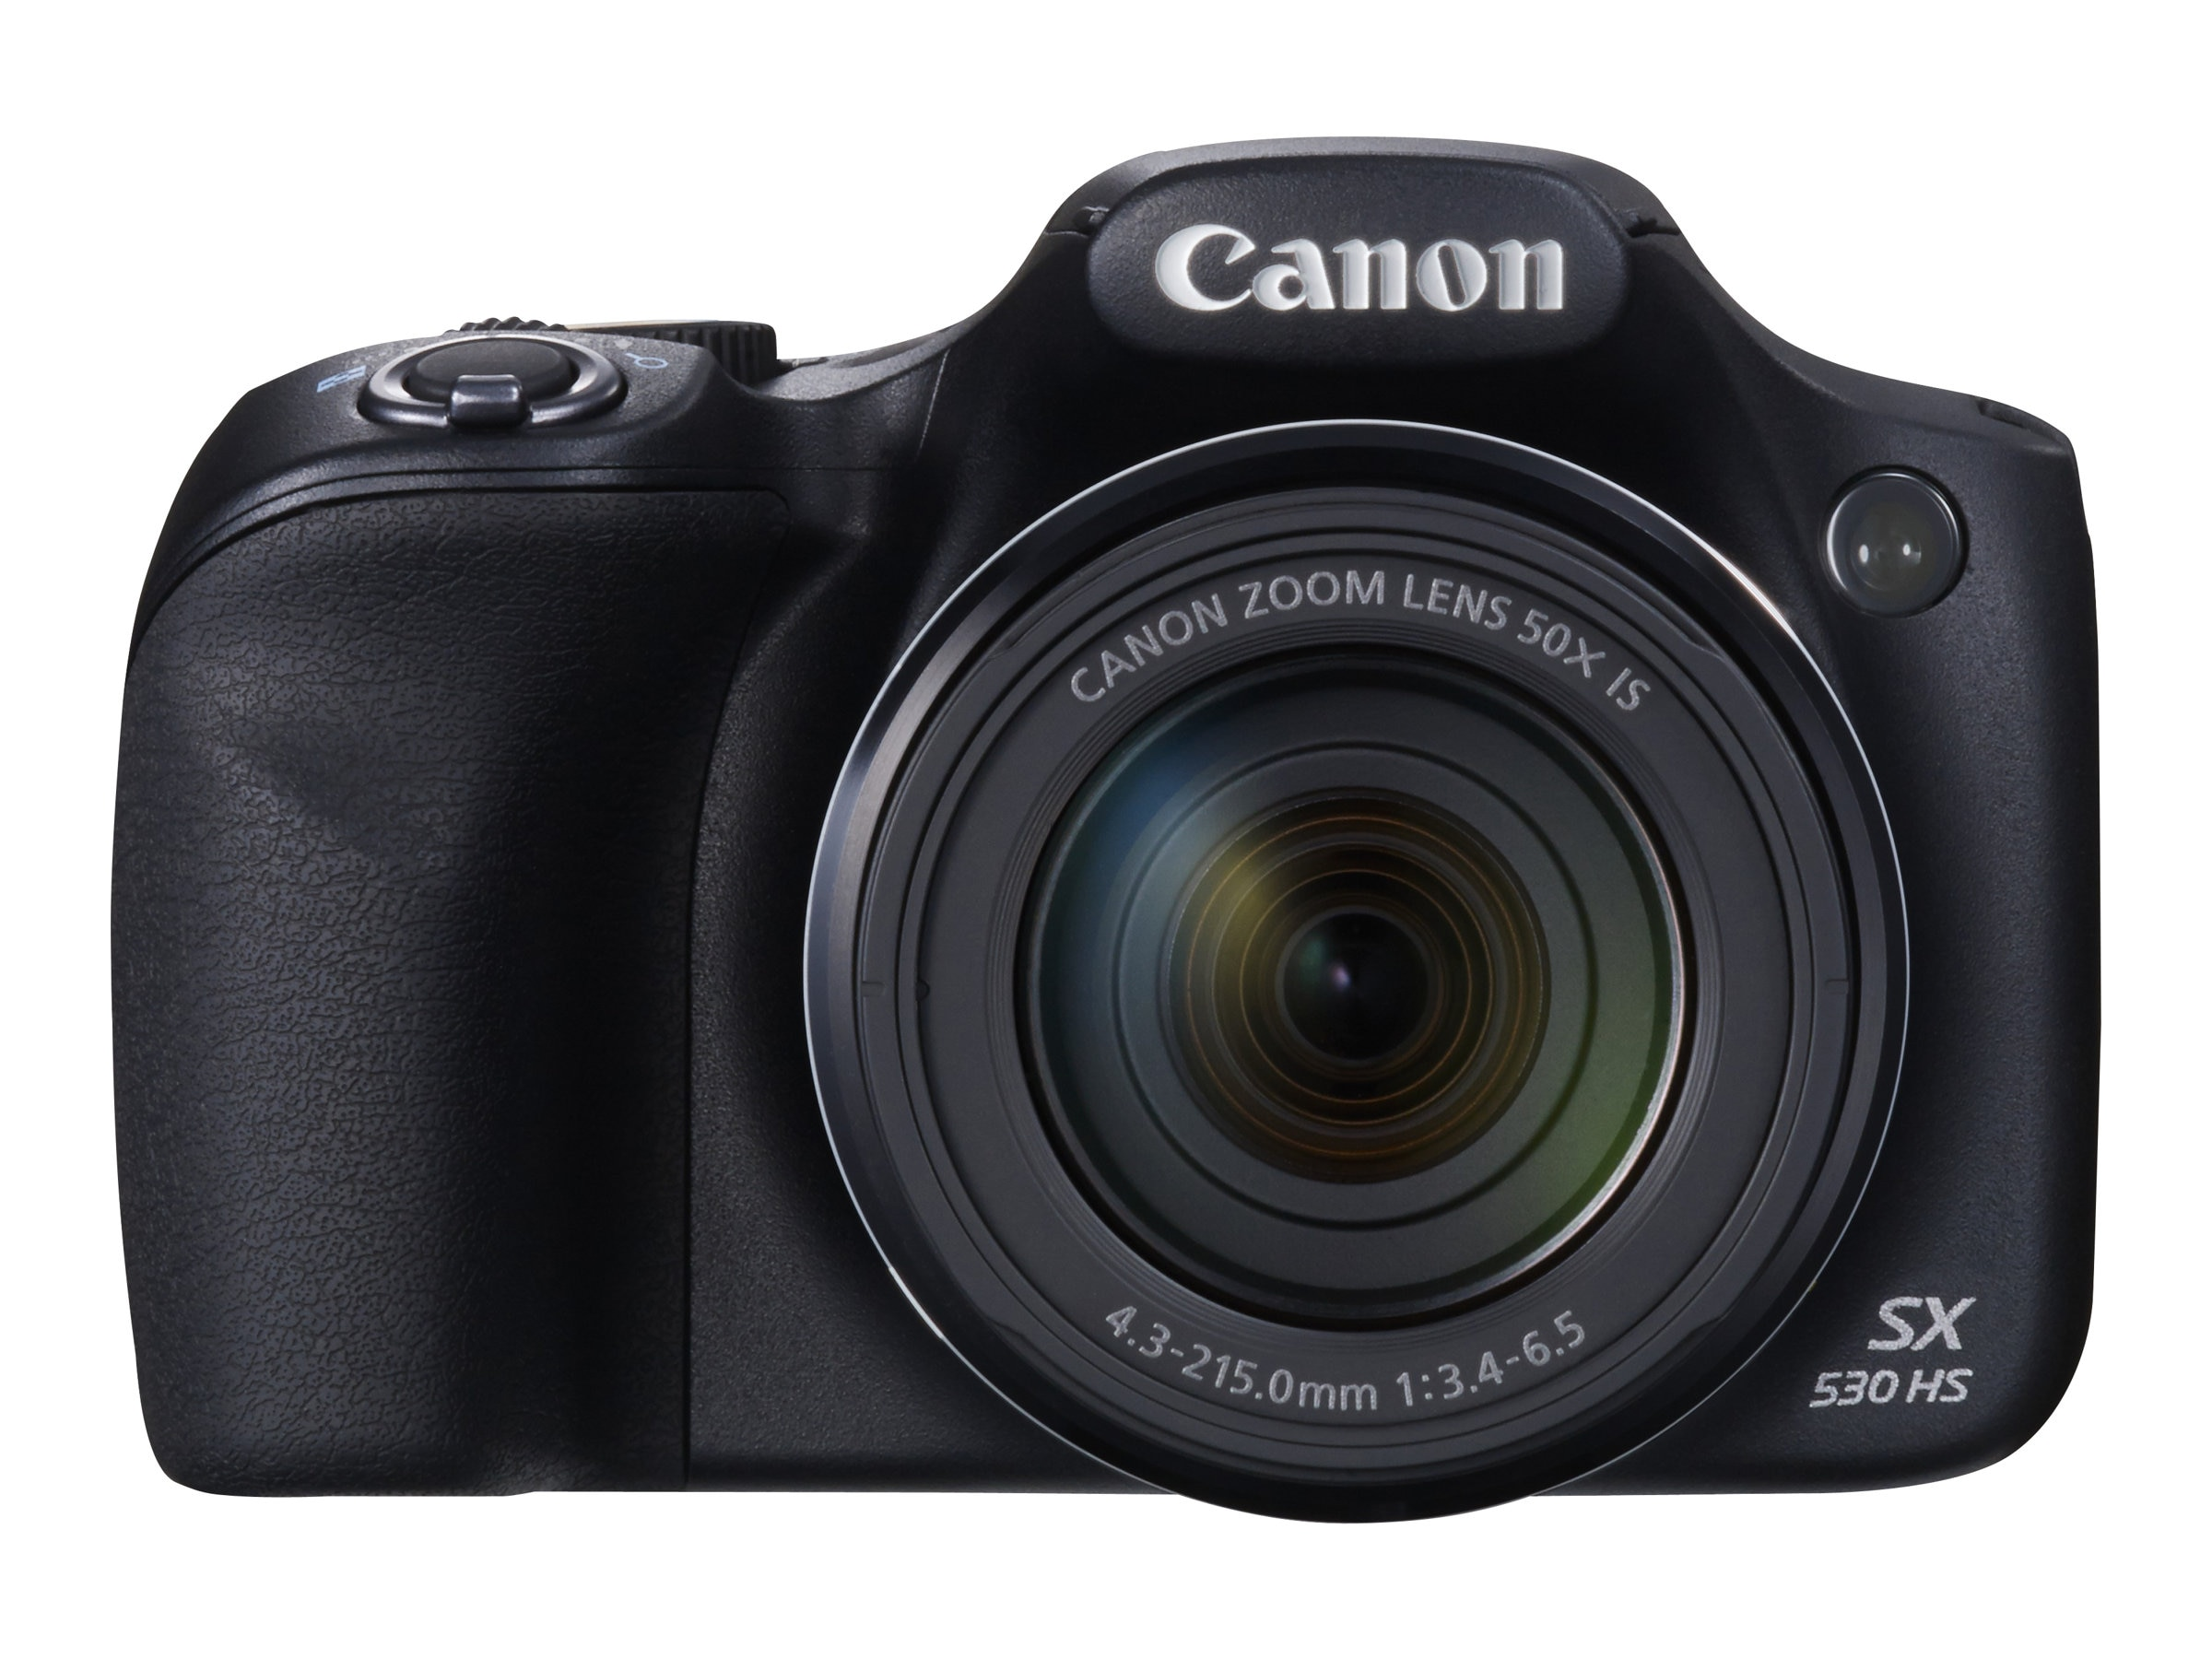 Canon PowerShot SX530 HS Camera, 16MP, 50x Zoom, Black, 9779B001